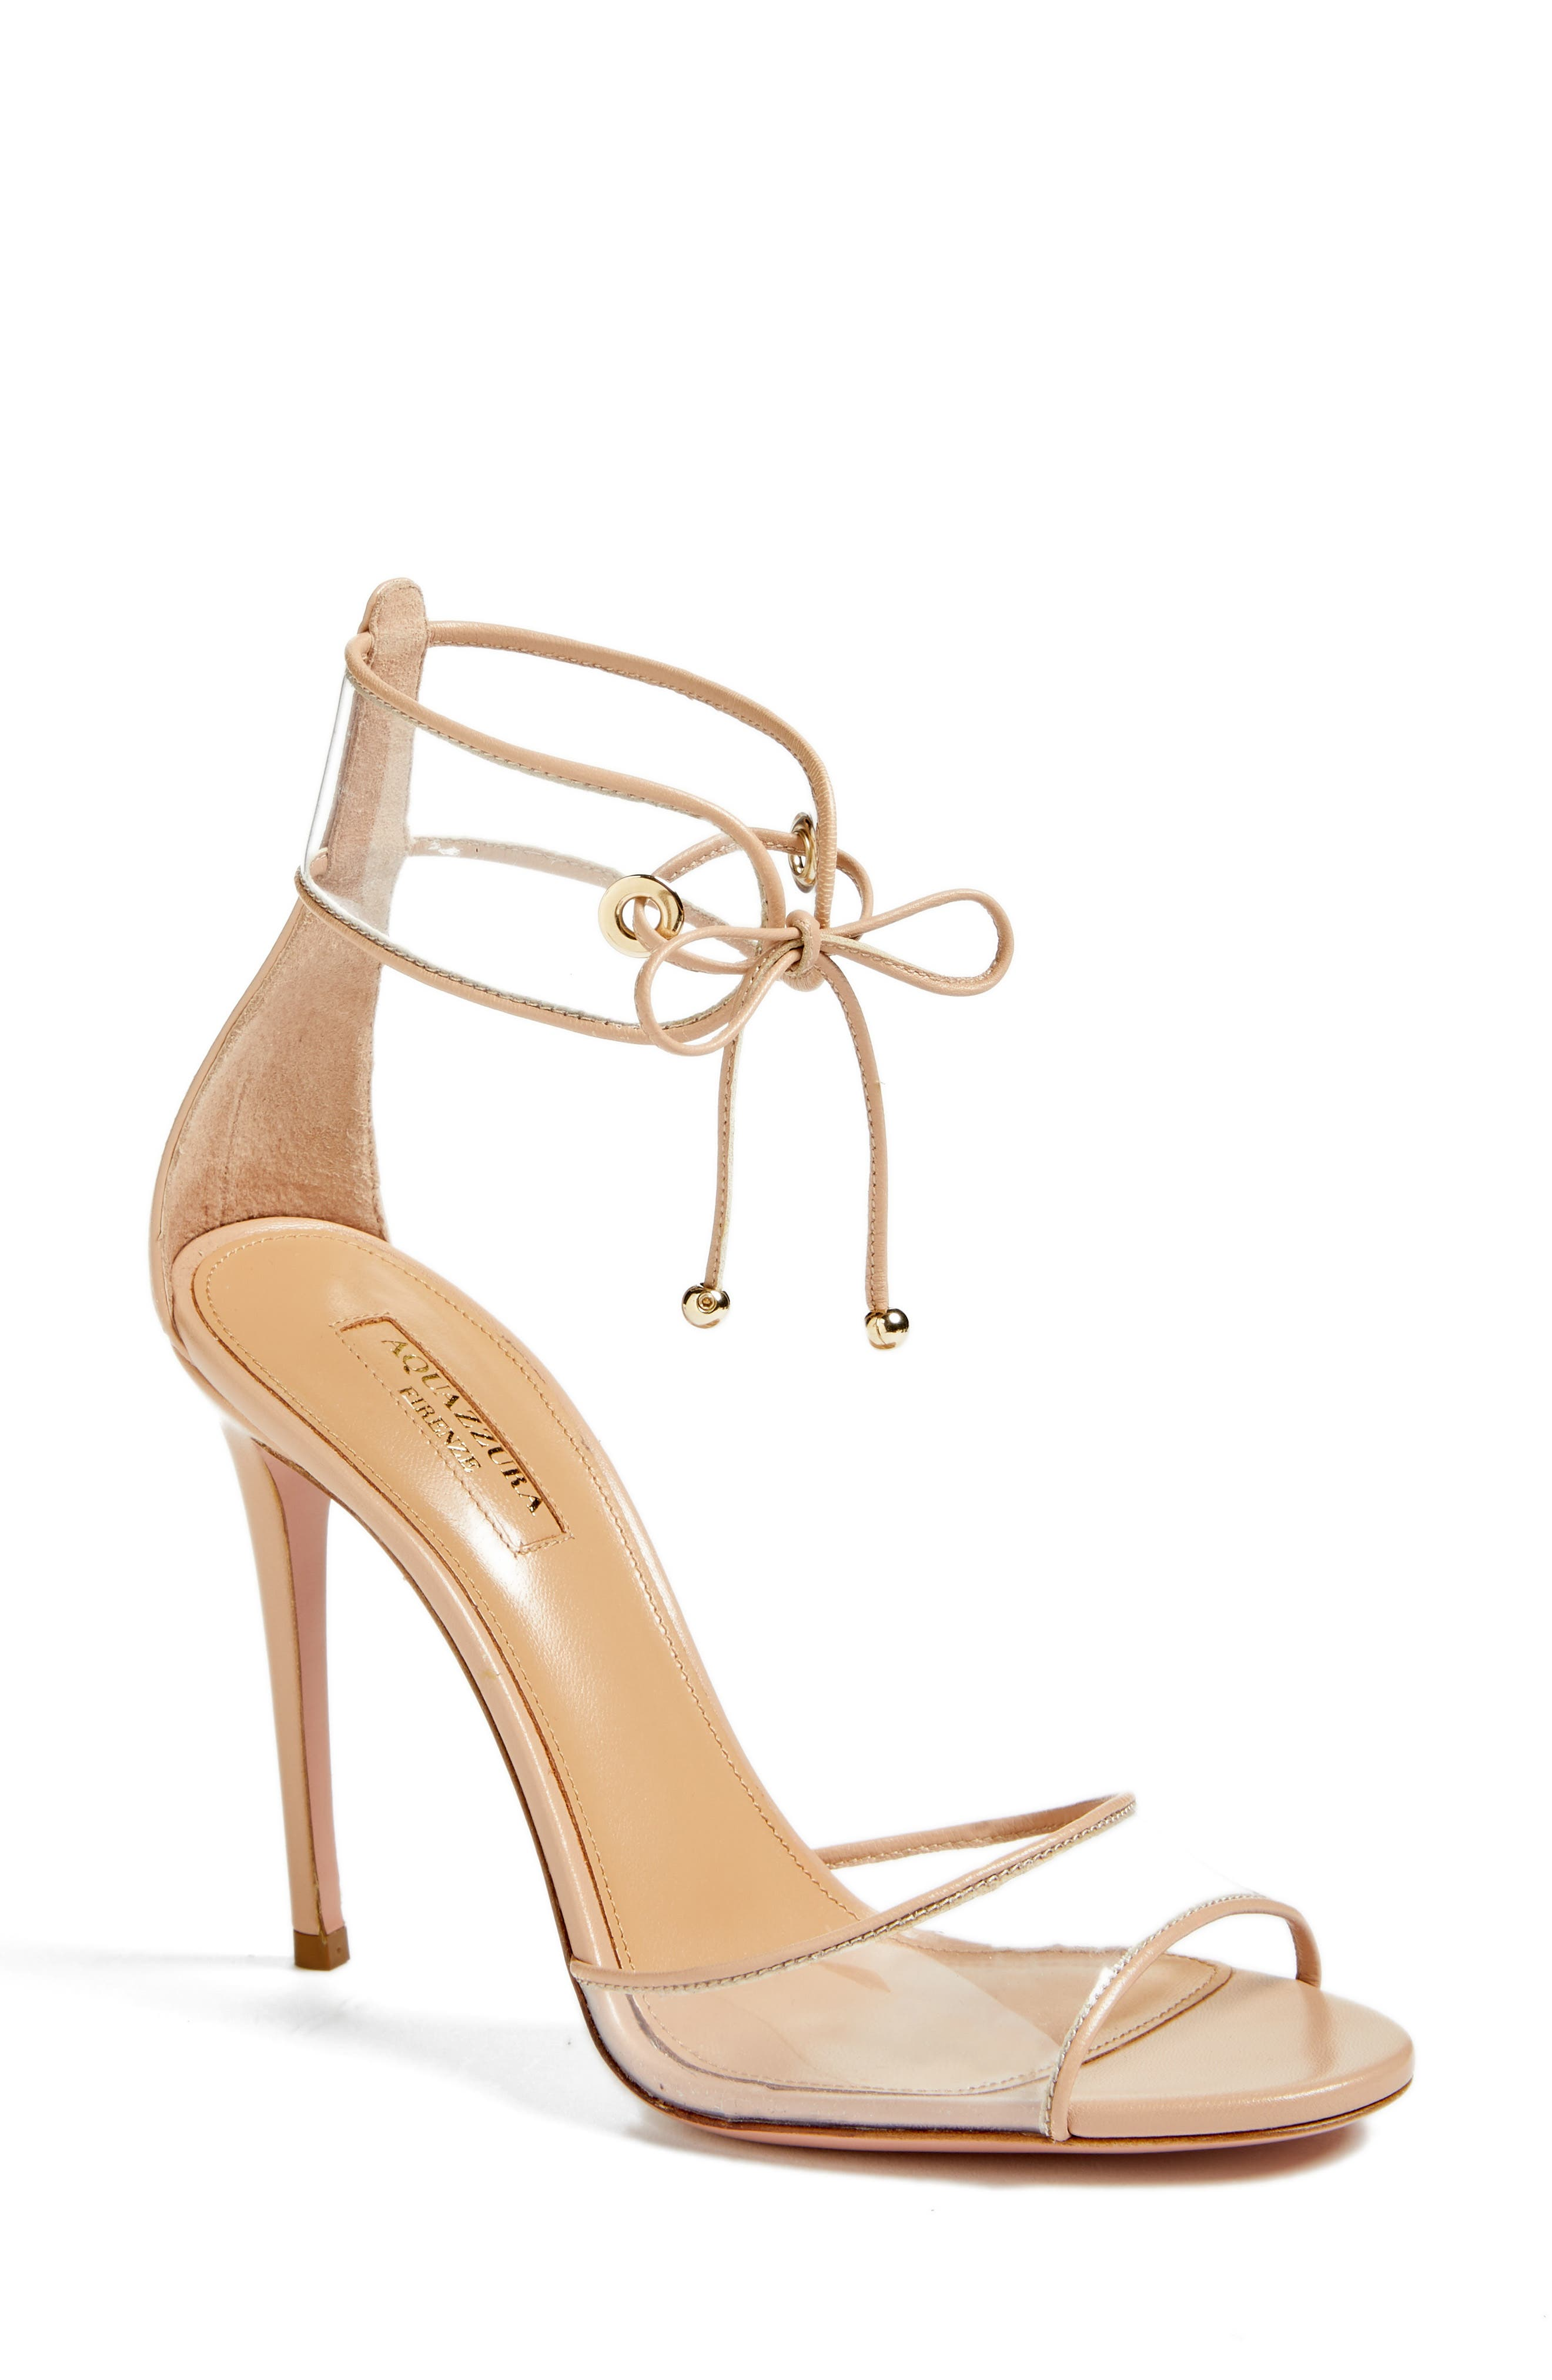 Optic Clear Ankle Tie Sandal,                         Main,                         color, Powder Pink